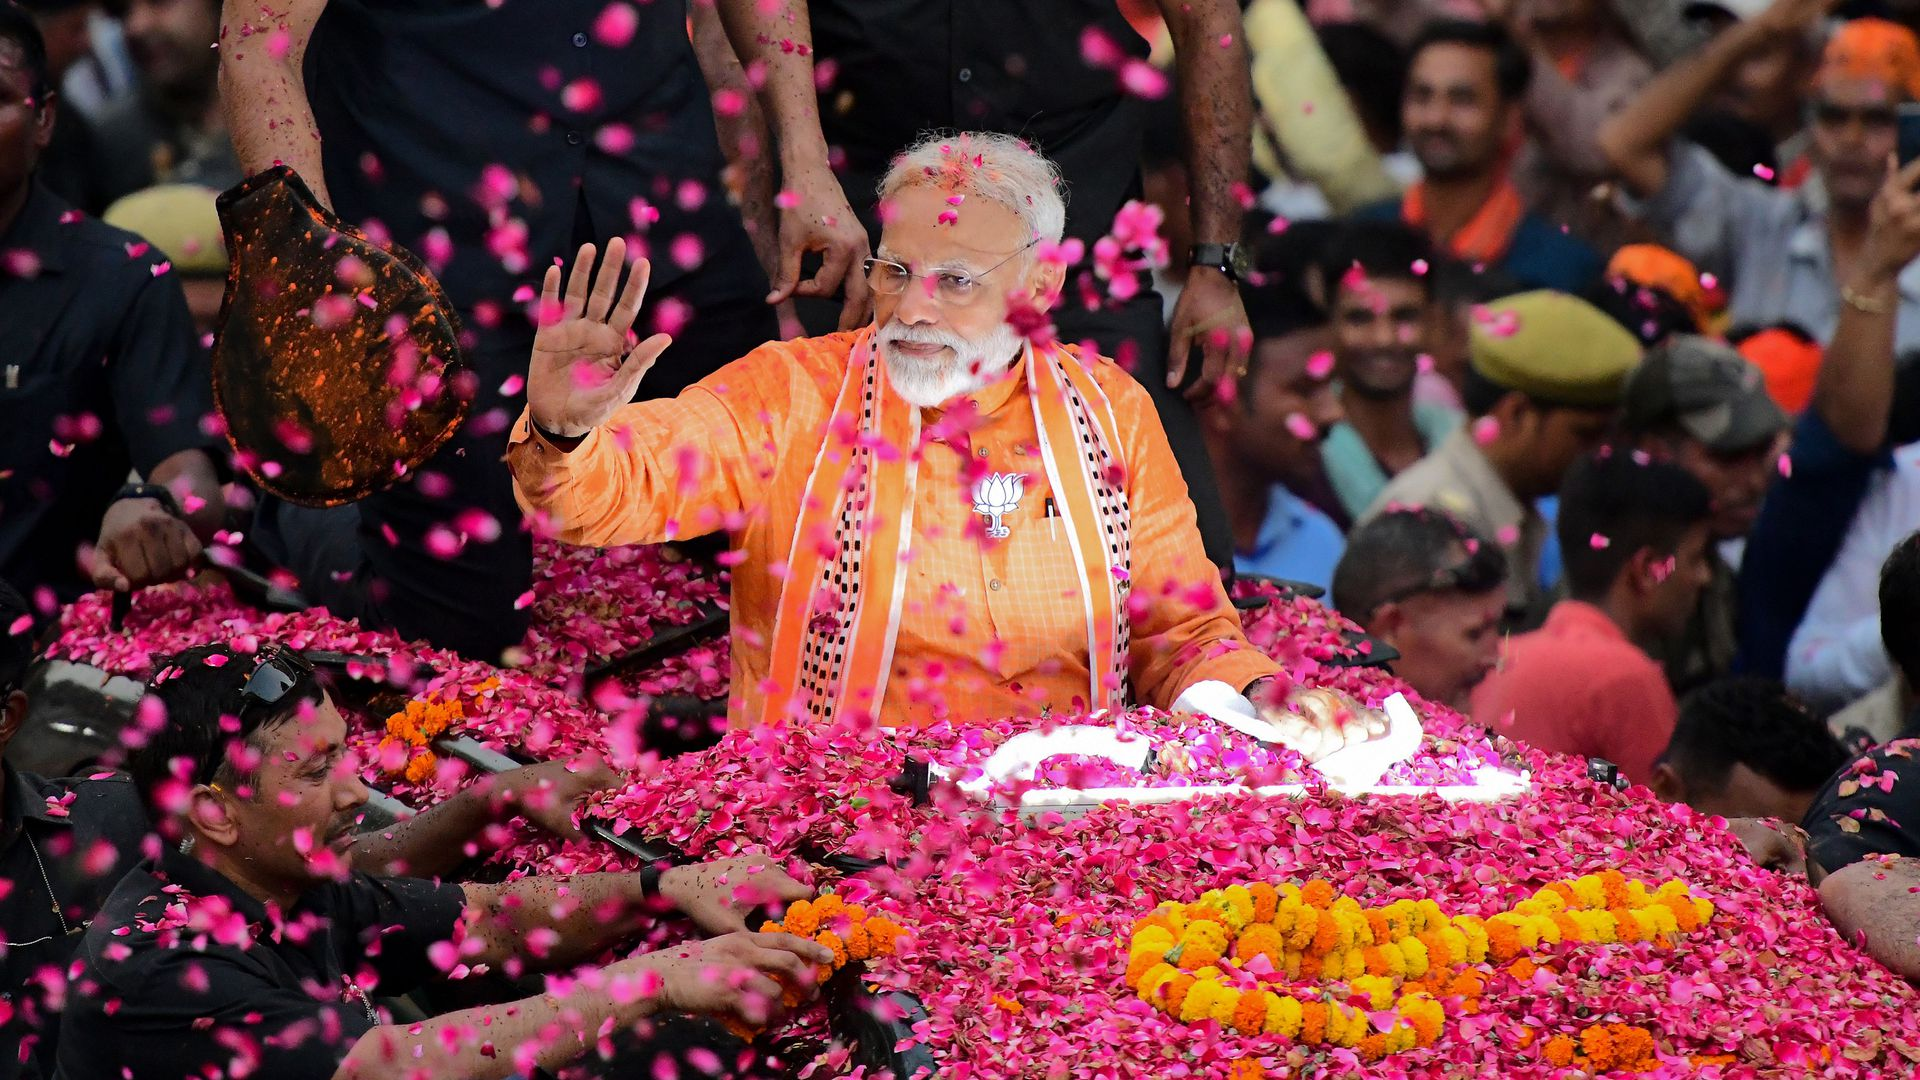 Indian Prime Minister and leader of the Bharatiya Janata Party (BJP) Narendra Modi gestures during a roadshow in Varanasi on April 25, 2019.